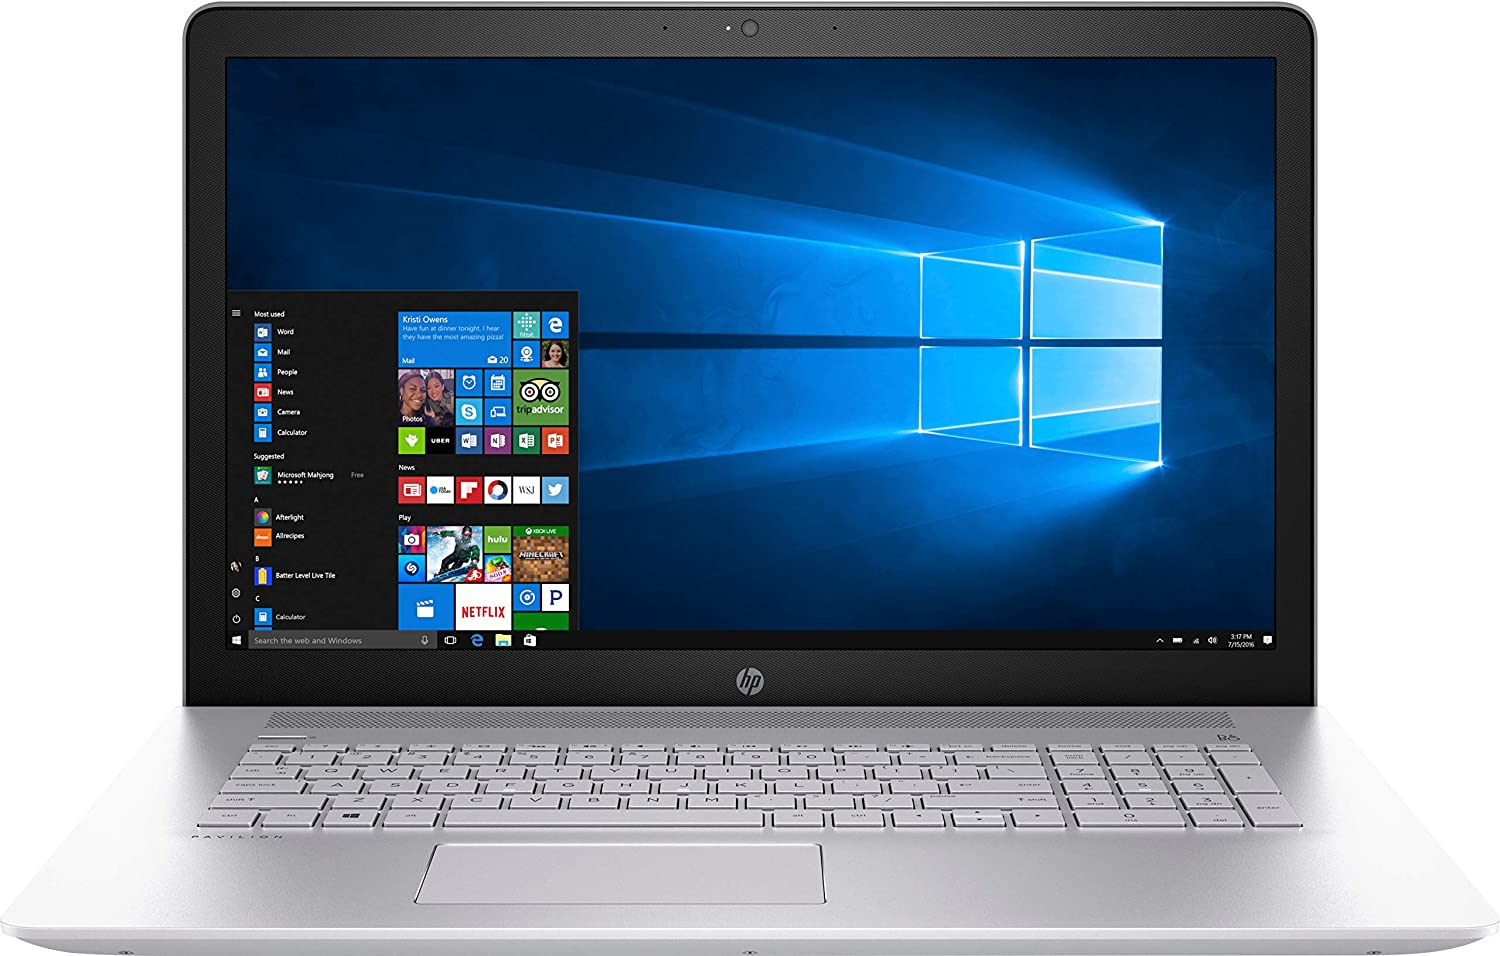 "HP Pavilion 17-ar050wm Laptop 17.3"" FHD IPS anti-glare WLED-backlit (1920 x 1080) AMD Quad-Core A10-9620P 8GB RAM 1TB HDD DVD-Writer Windows 10 Home 64"